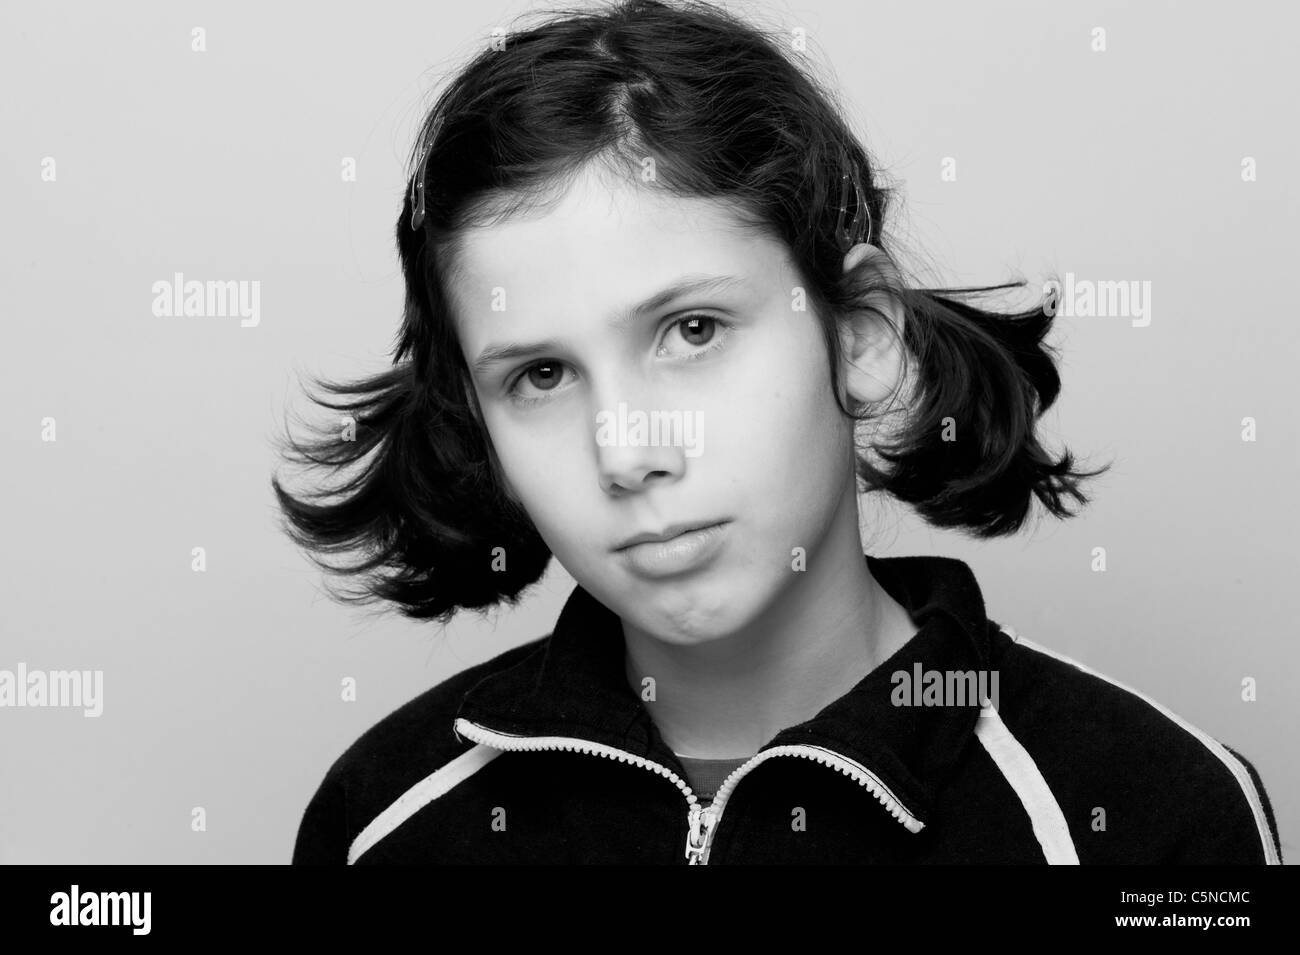 Portrait of a young girl, looking unhappy Stock Photo